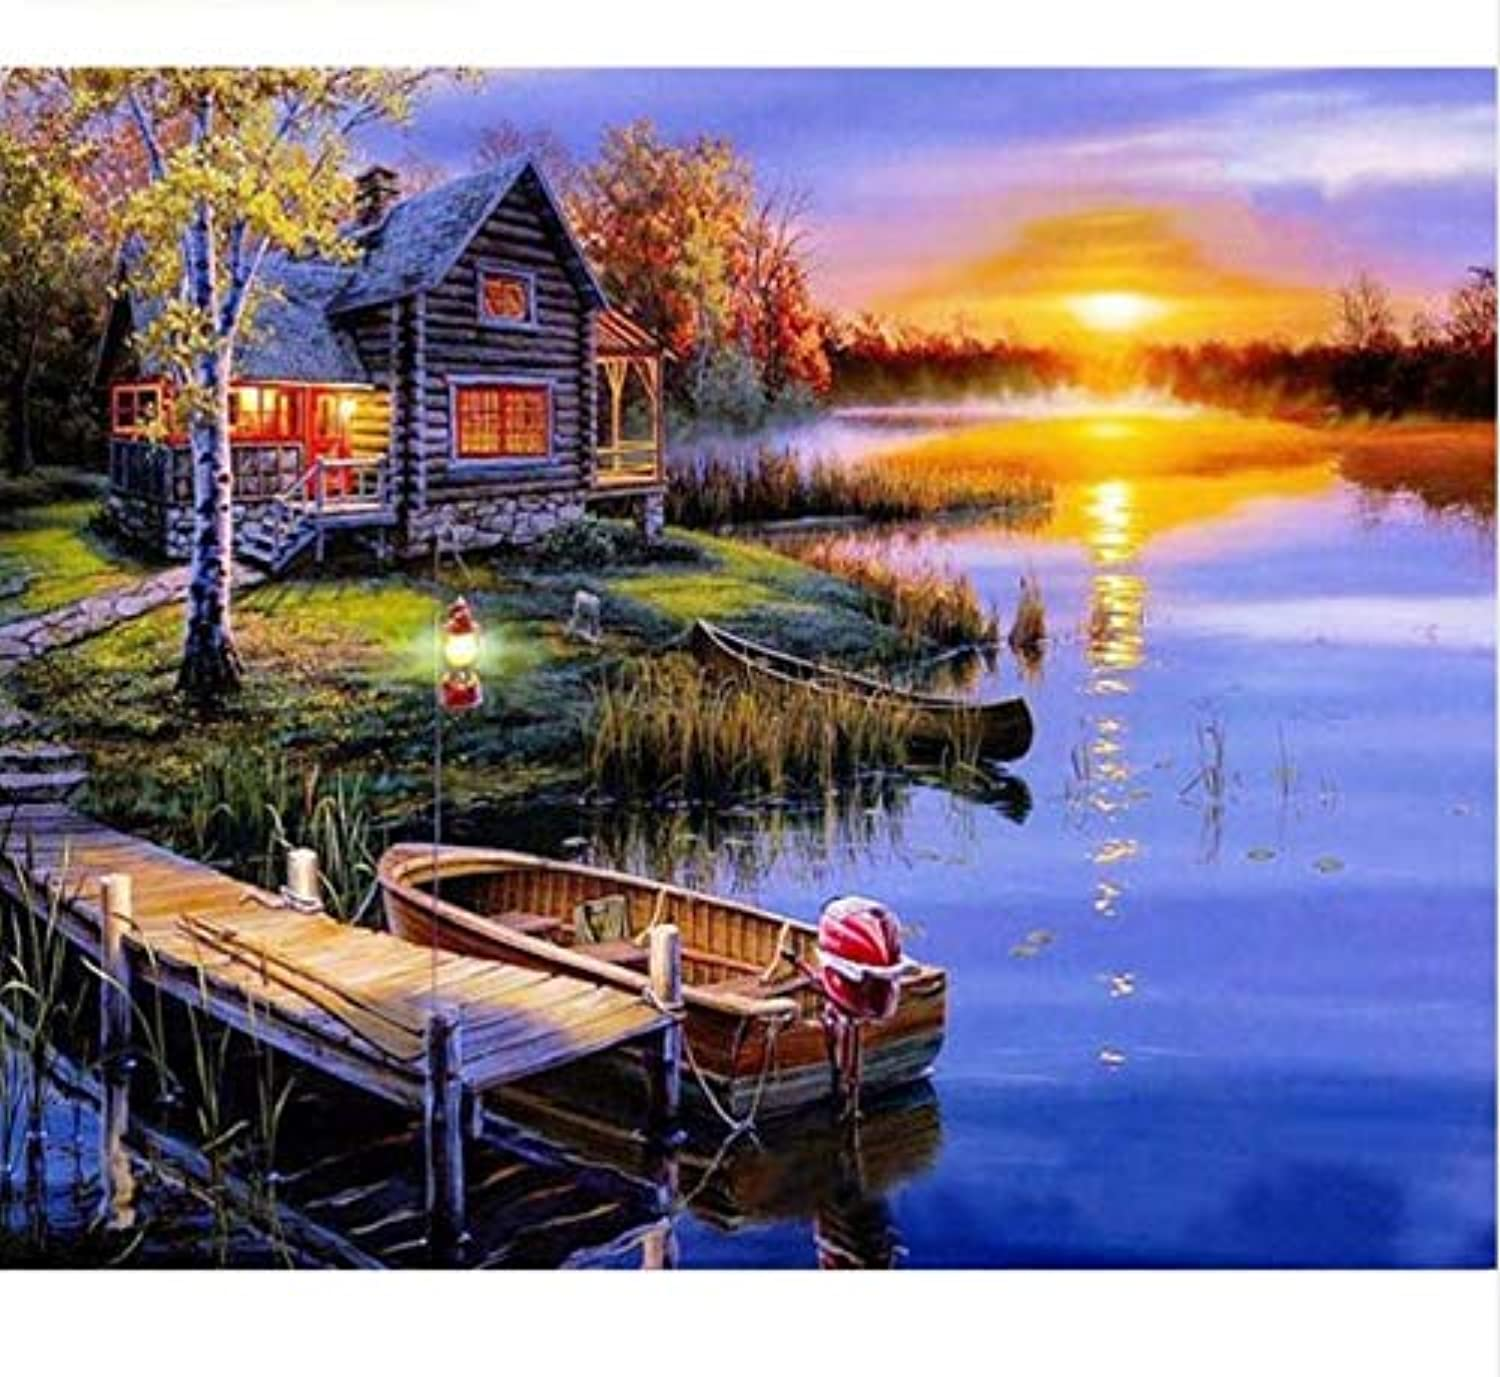 UPUPUPUP Sunset Village Diy Painting By Numbers Kit Modern Wall Art Picture Hand Painted Oil Painting For Home Decor Artworks,Tworidc550X70Cm Framed